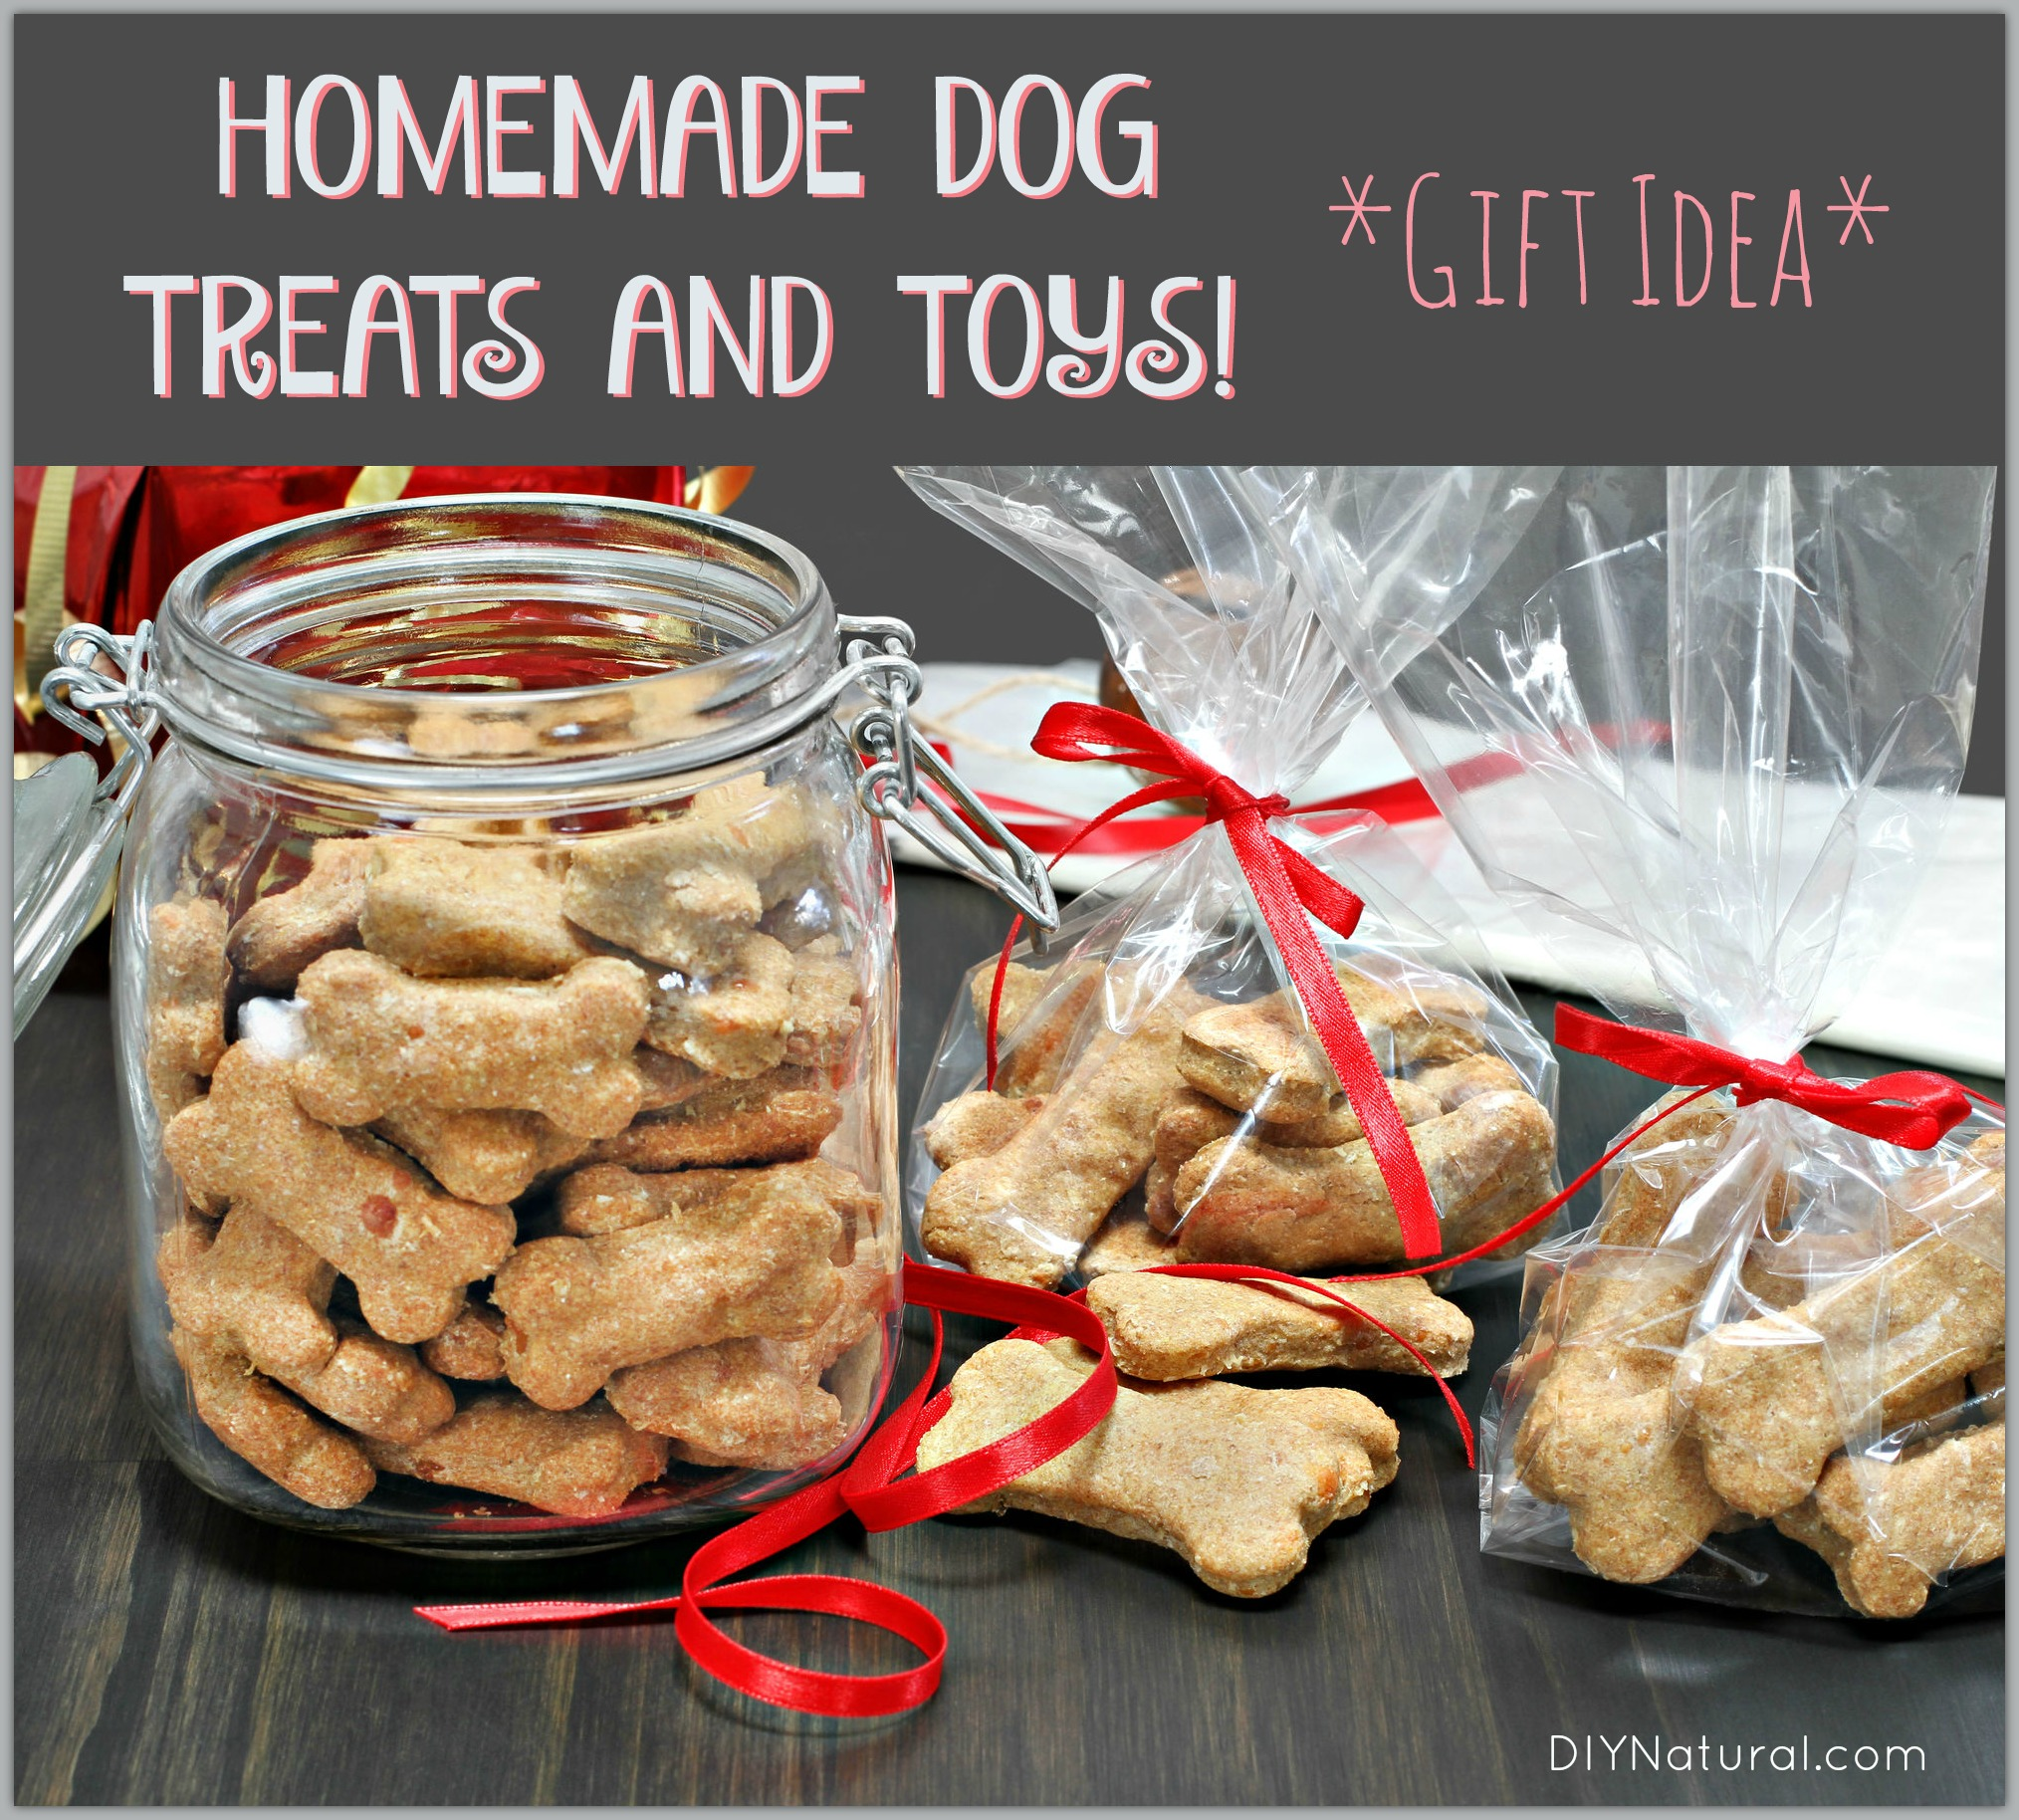 homemade dog treats and toys make for great gifts